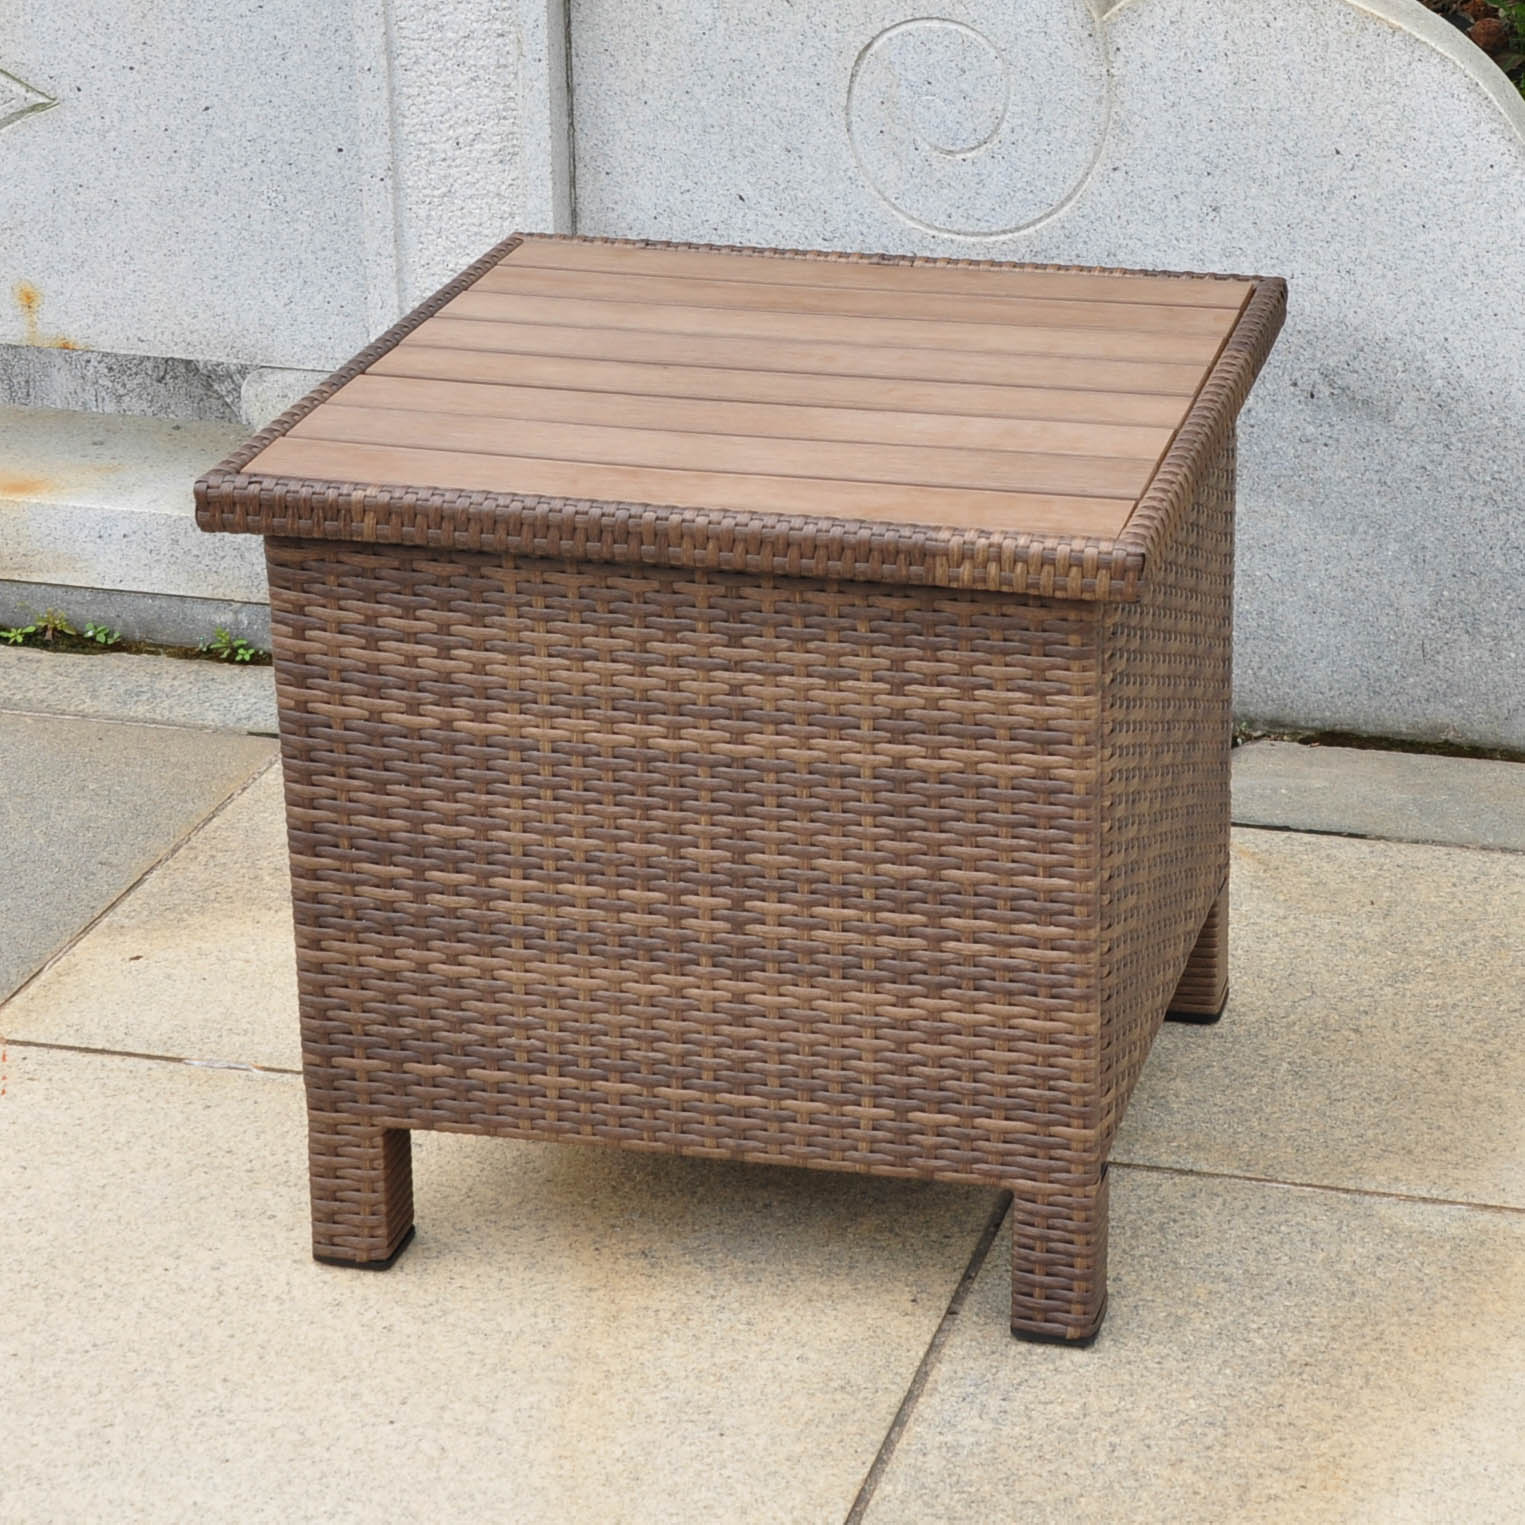 unique end tables diy the fantastic beautiful brown wicker outdoor patio abn table antique quick view vintage nightstands formica extra large dog crate sectional couch runners